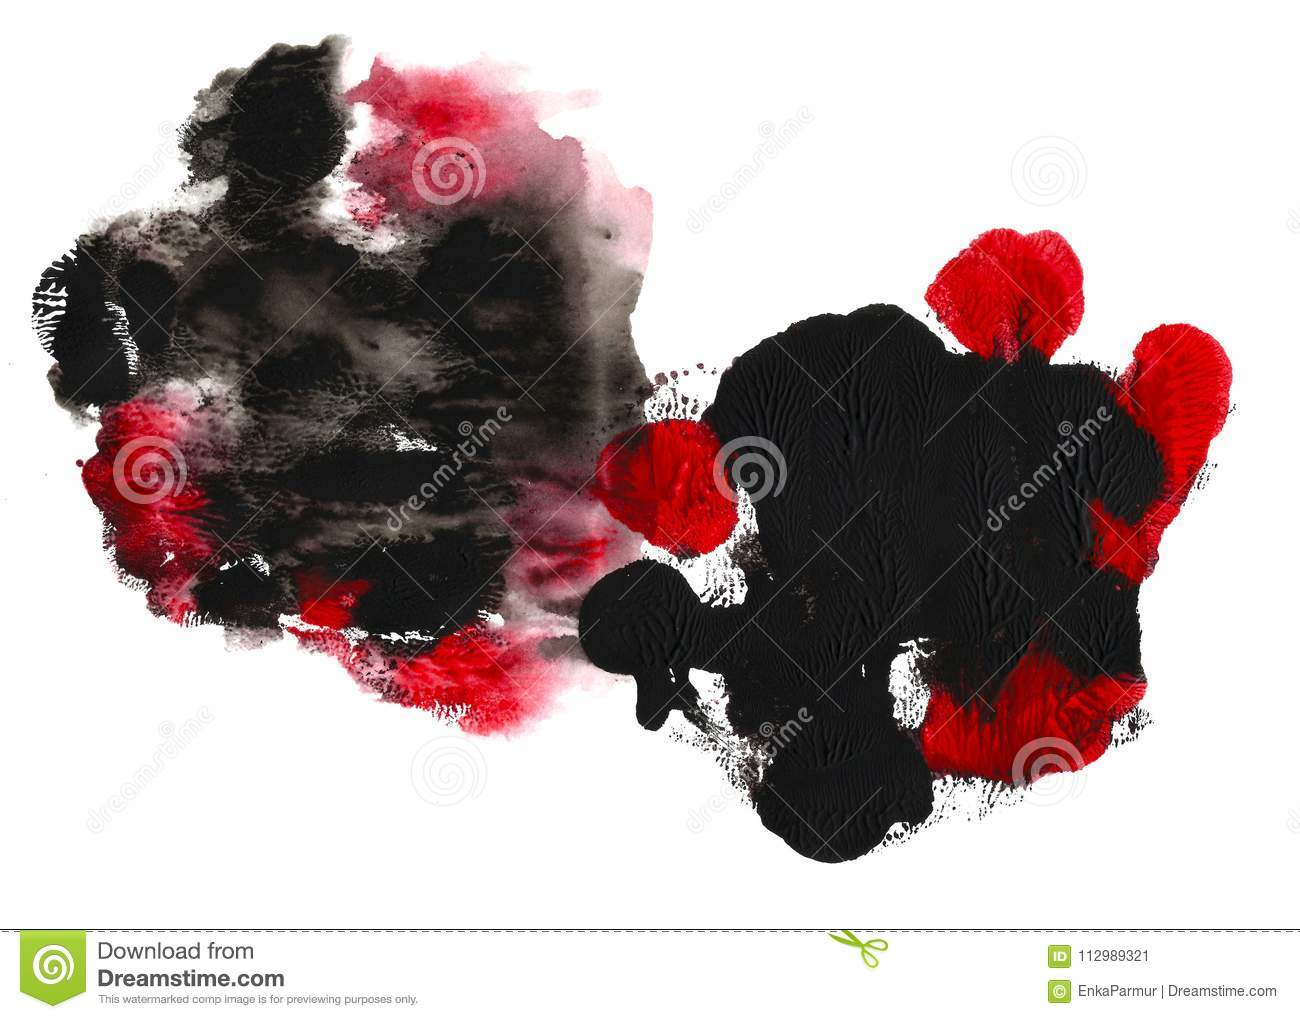 Abstract acrylic spot isolated on white background. Black, red vibrant color. Monotyped hand drawn grunge double spot